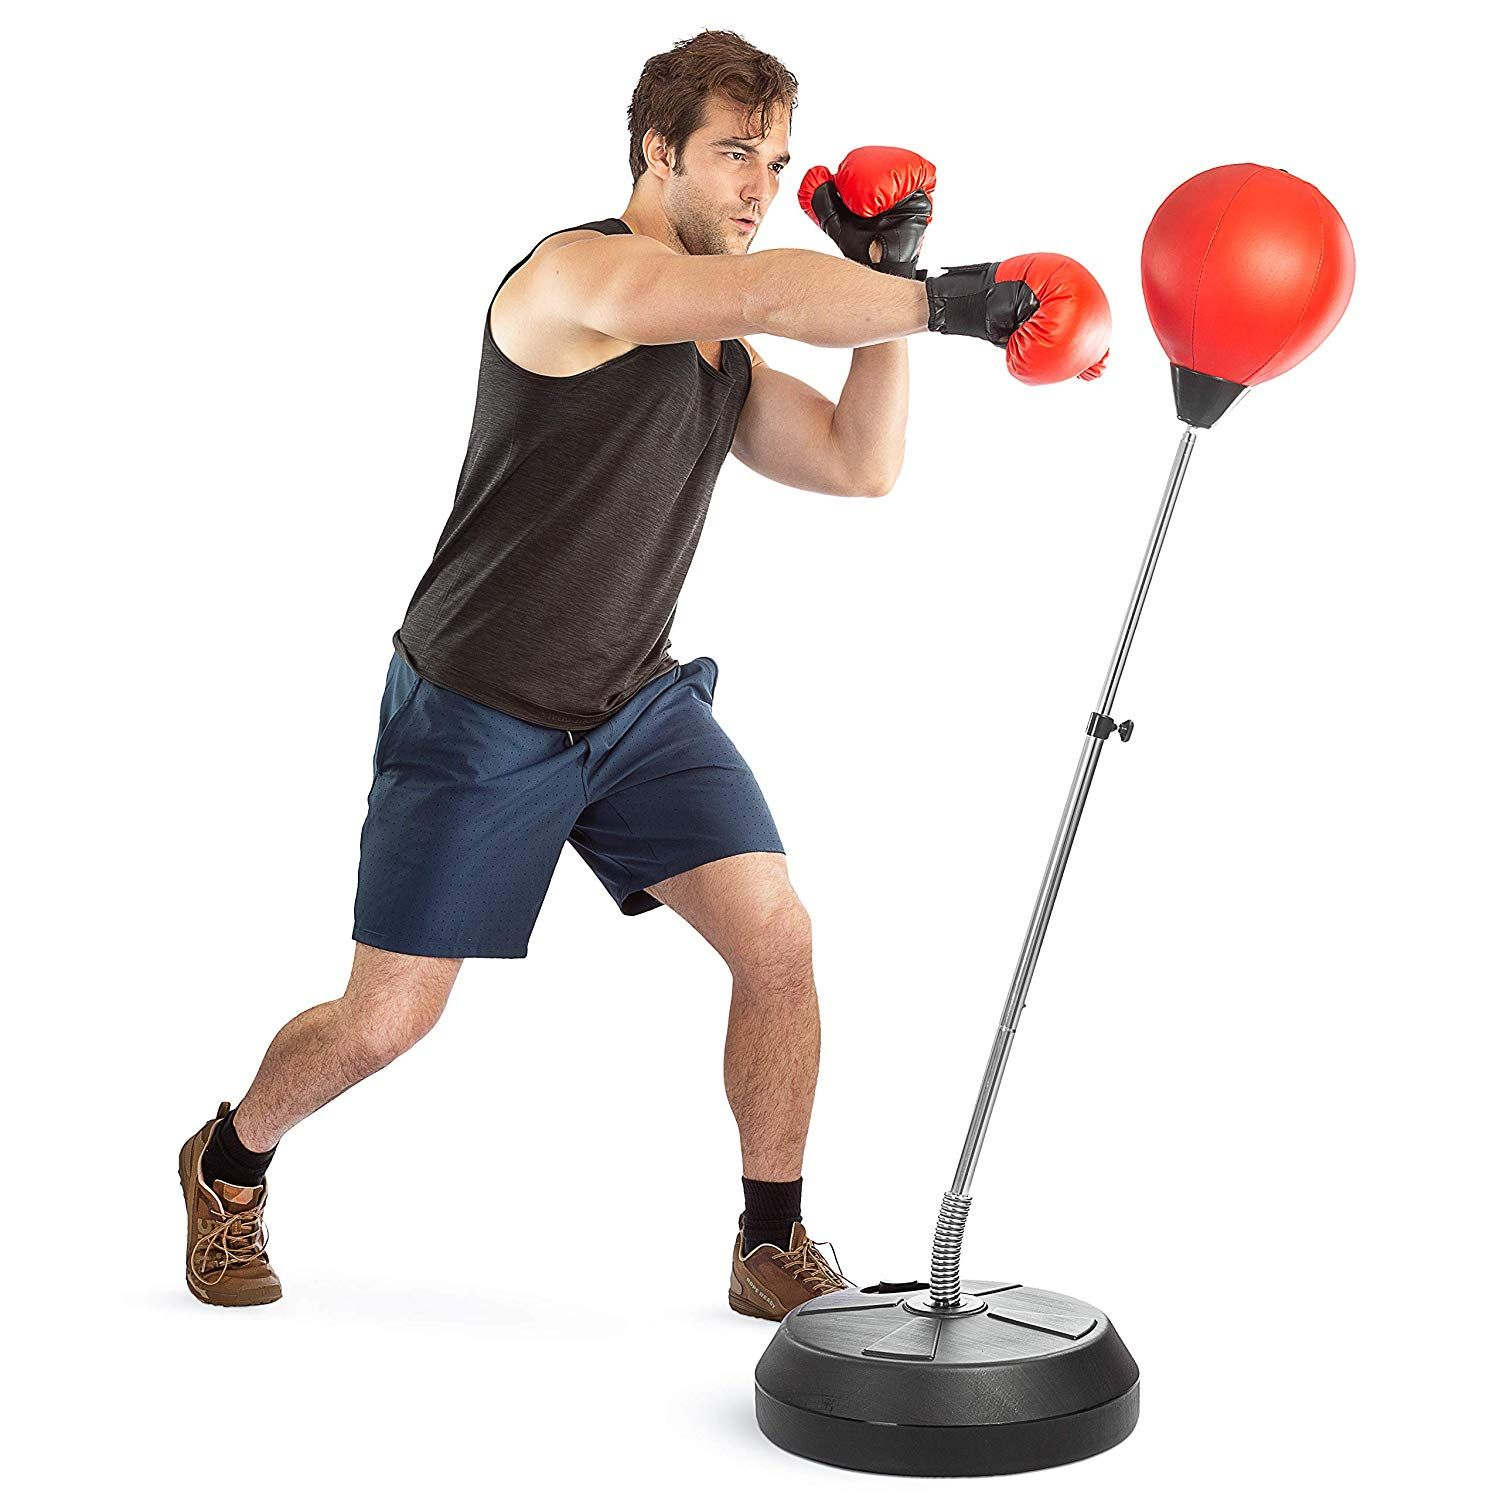 Punch bag Boxing Punching Speed Ball Martial MMA Stress Reliever Fitness Spring